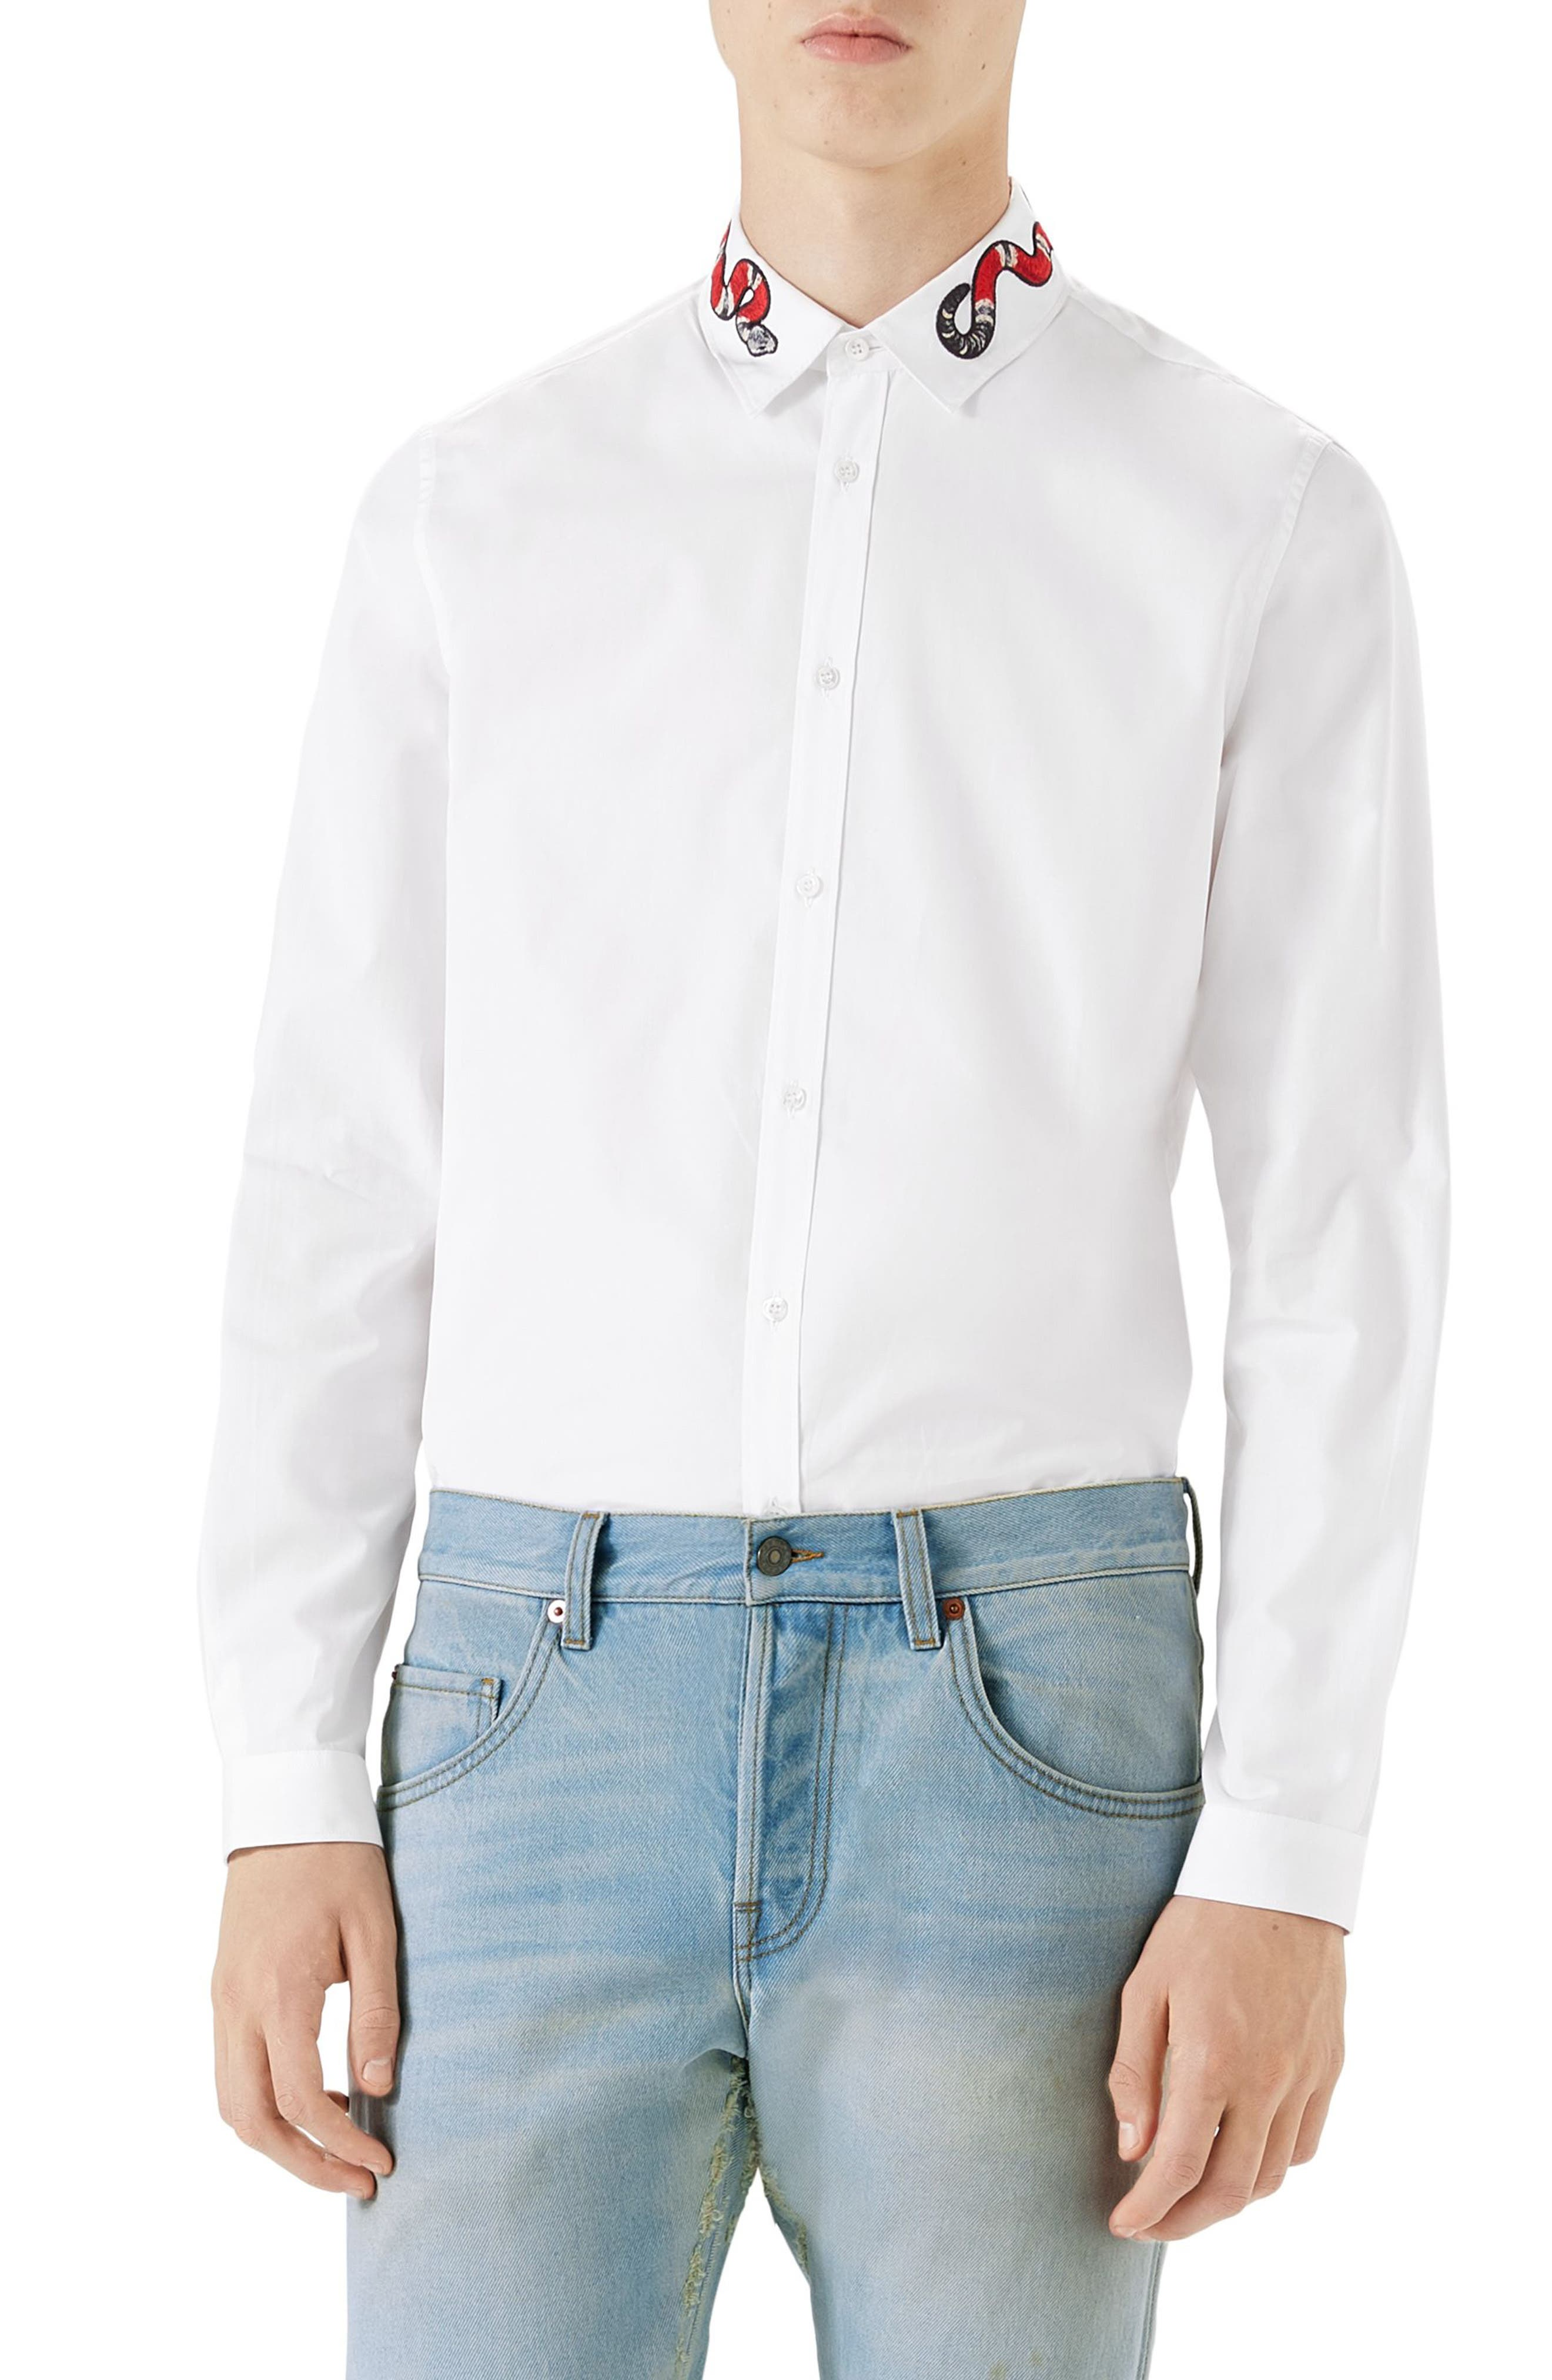 79572edace42 Men's Gucci Clothing | Nordstrom